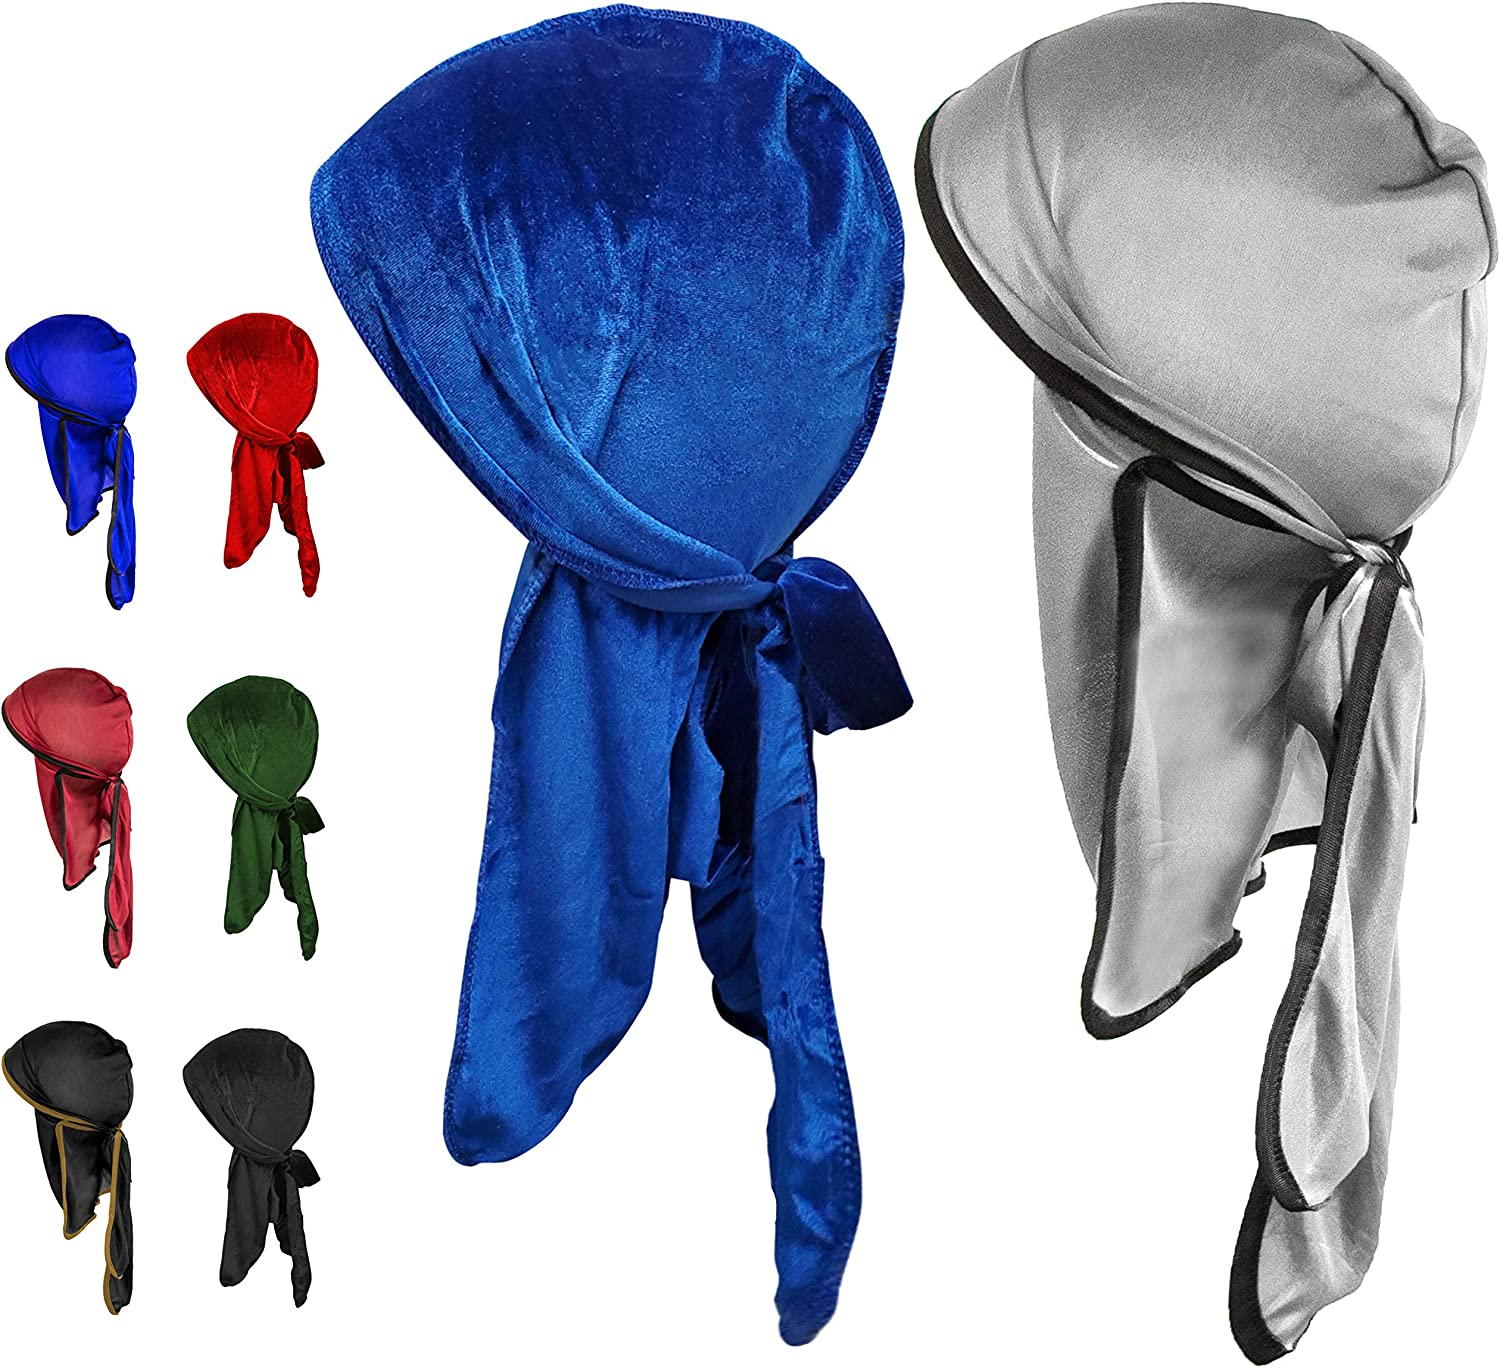 durag Pack, 4 Velvet durag 4 durags for Men Silk Luxury Velvet durag for Men 8 Pk Durags for Men